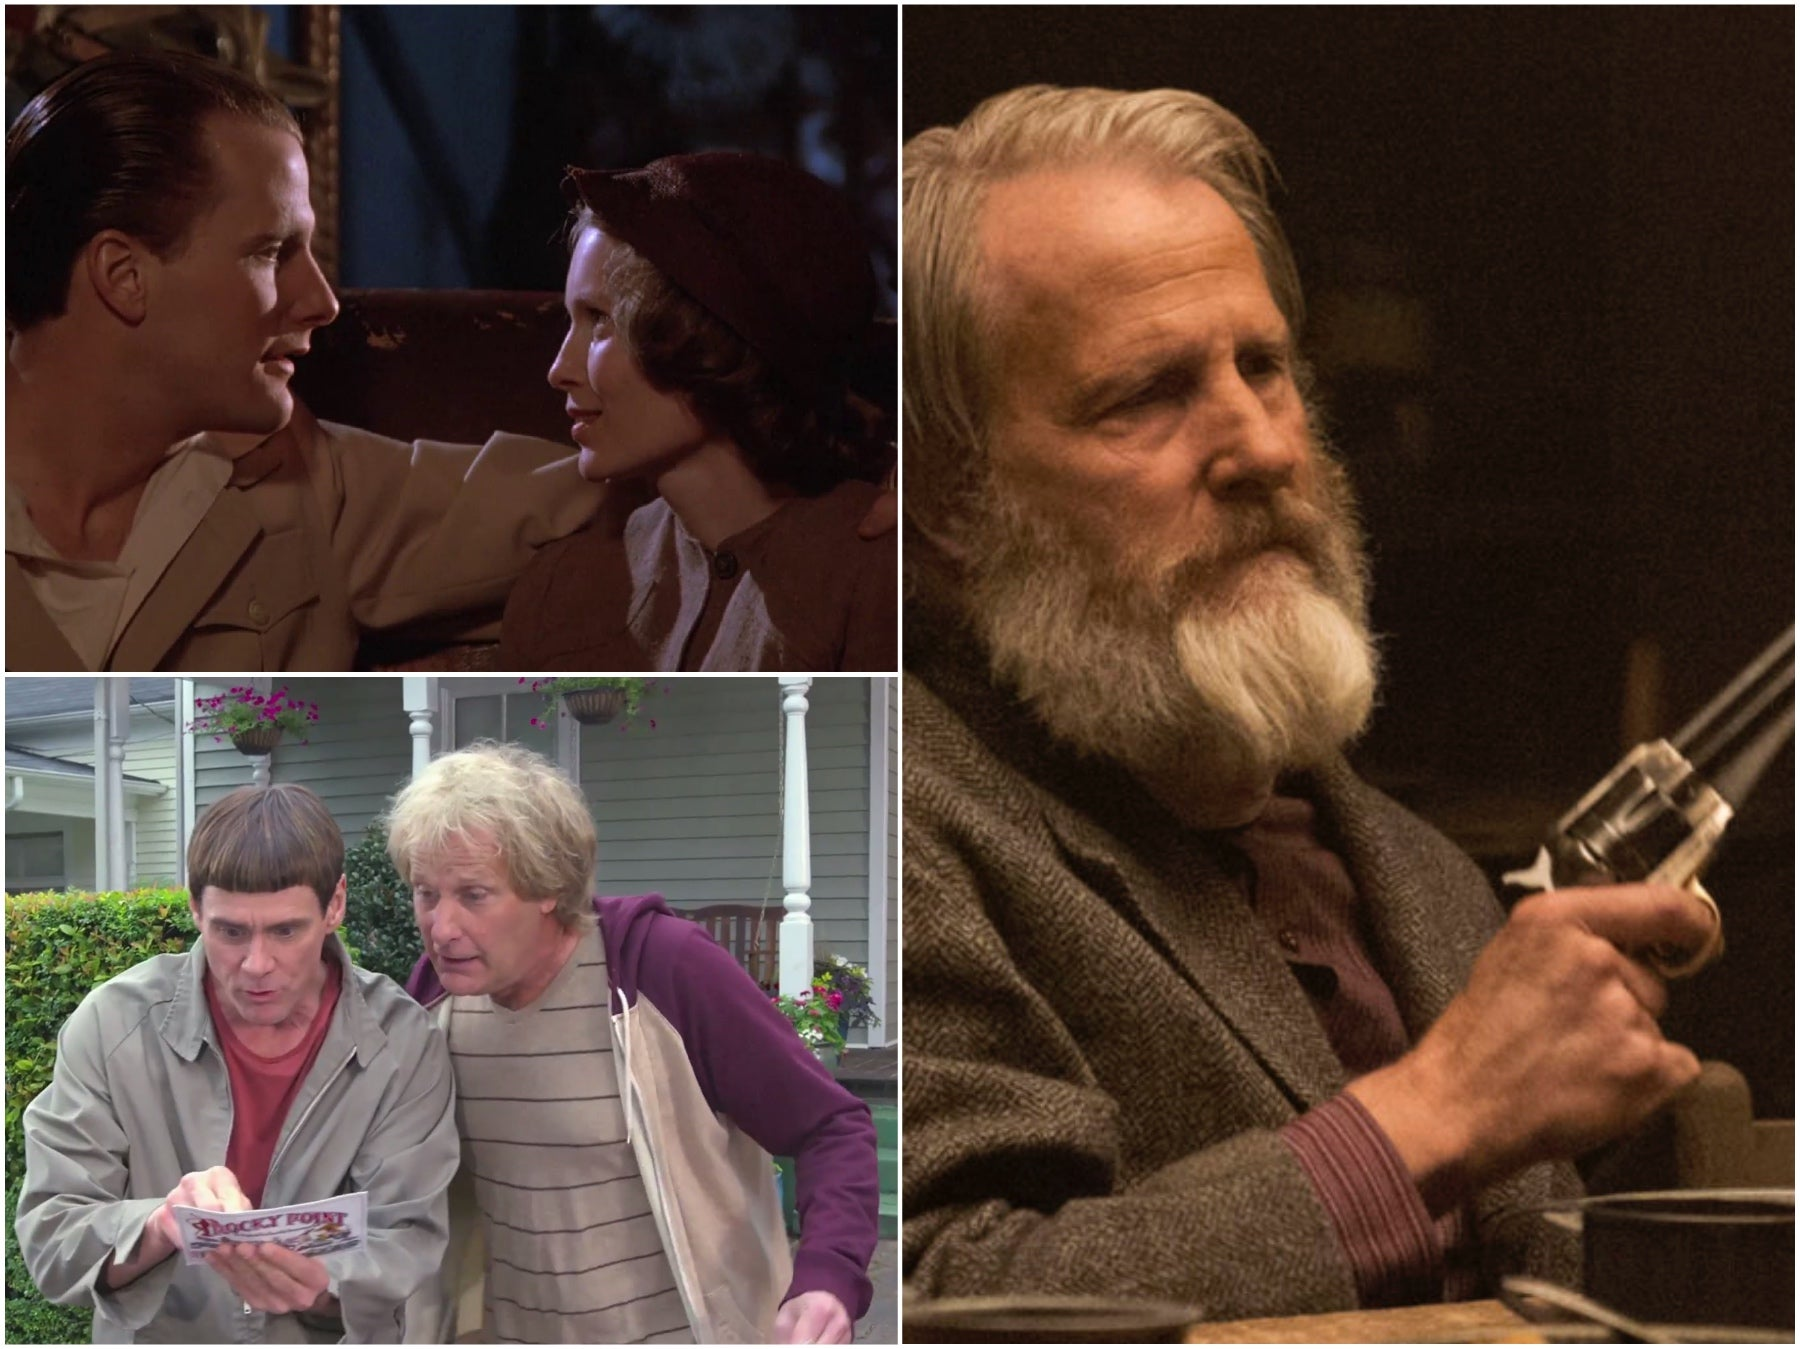 Scenes from filsma nd Tv series starring Jeff Daniels